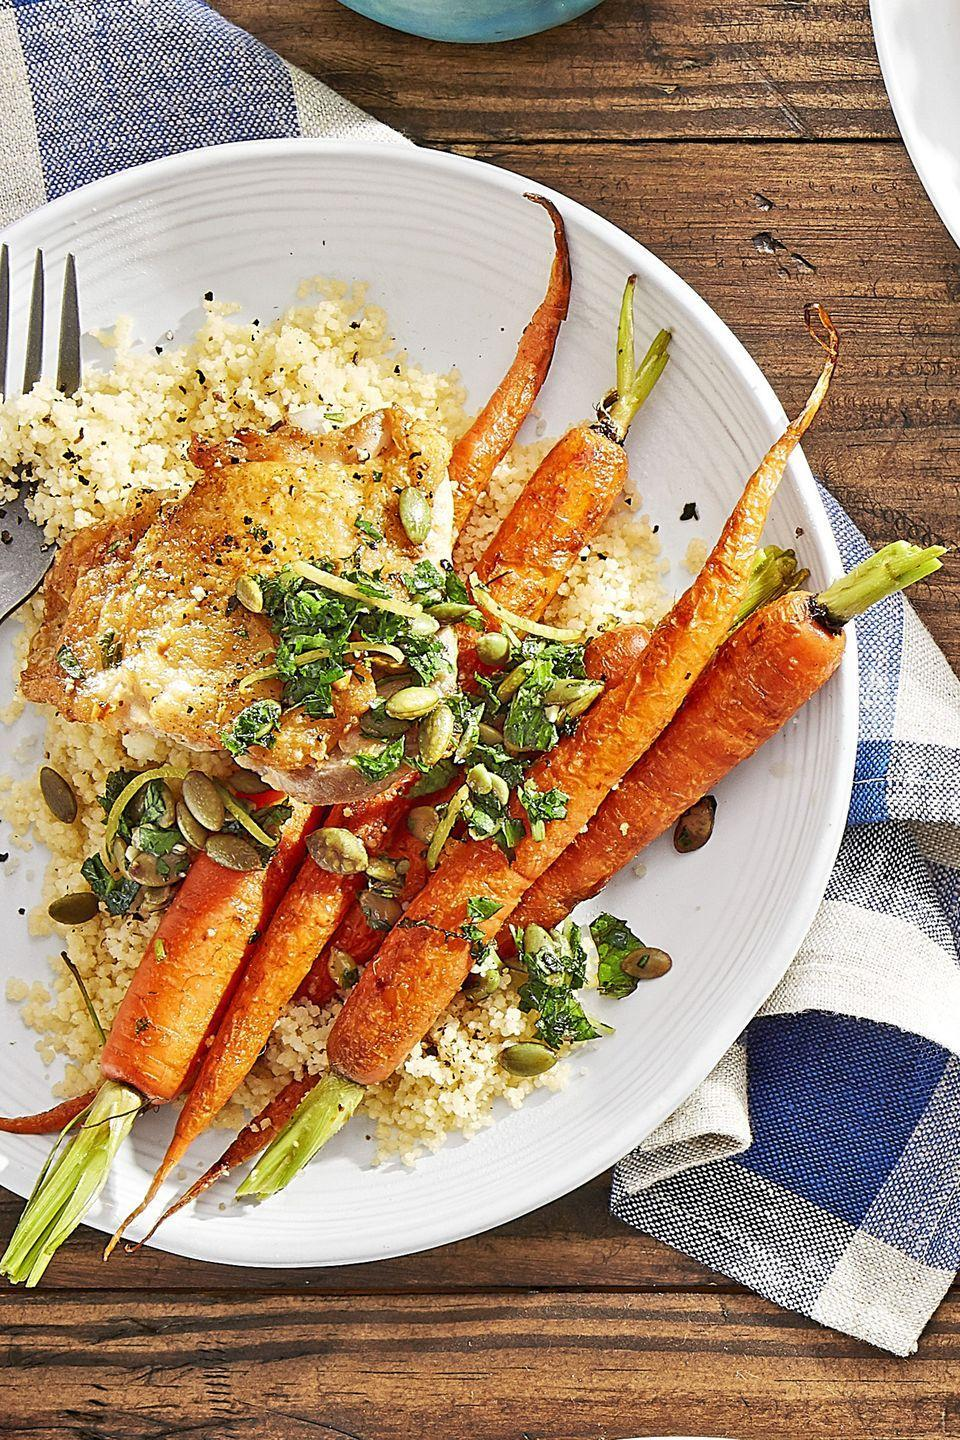 """<p>Who knew that roasting carrots whole could look so pretty? Especially when served with golden chicken thighs and fluffy couscous.</p><p><strong><a href=""""https://www.countryliving.com/food-drinks/recipes/a44273/crispy-chicken-roasted-carrots-couscous-recipe/"""" rel=""""nofollow noopener"""" target=""""_blank"""" data-ylk=""""slk:Get the recipe"""" class=""""link rapid-noclick-resp"""">Get the recipe</a>.</strong></p>"""